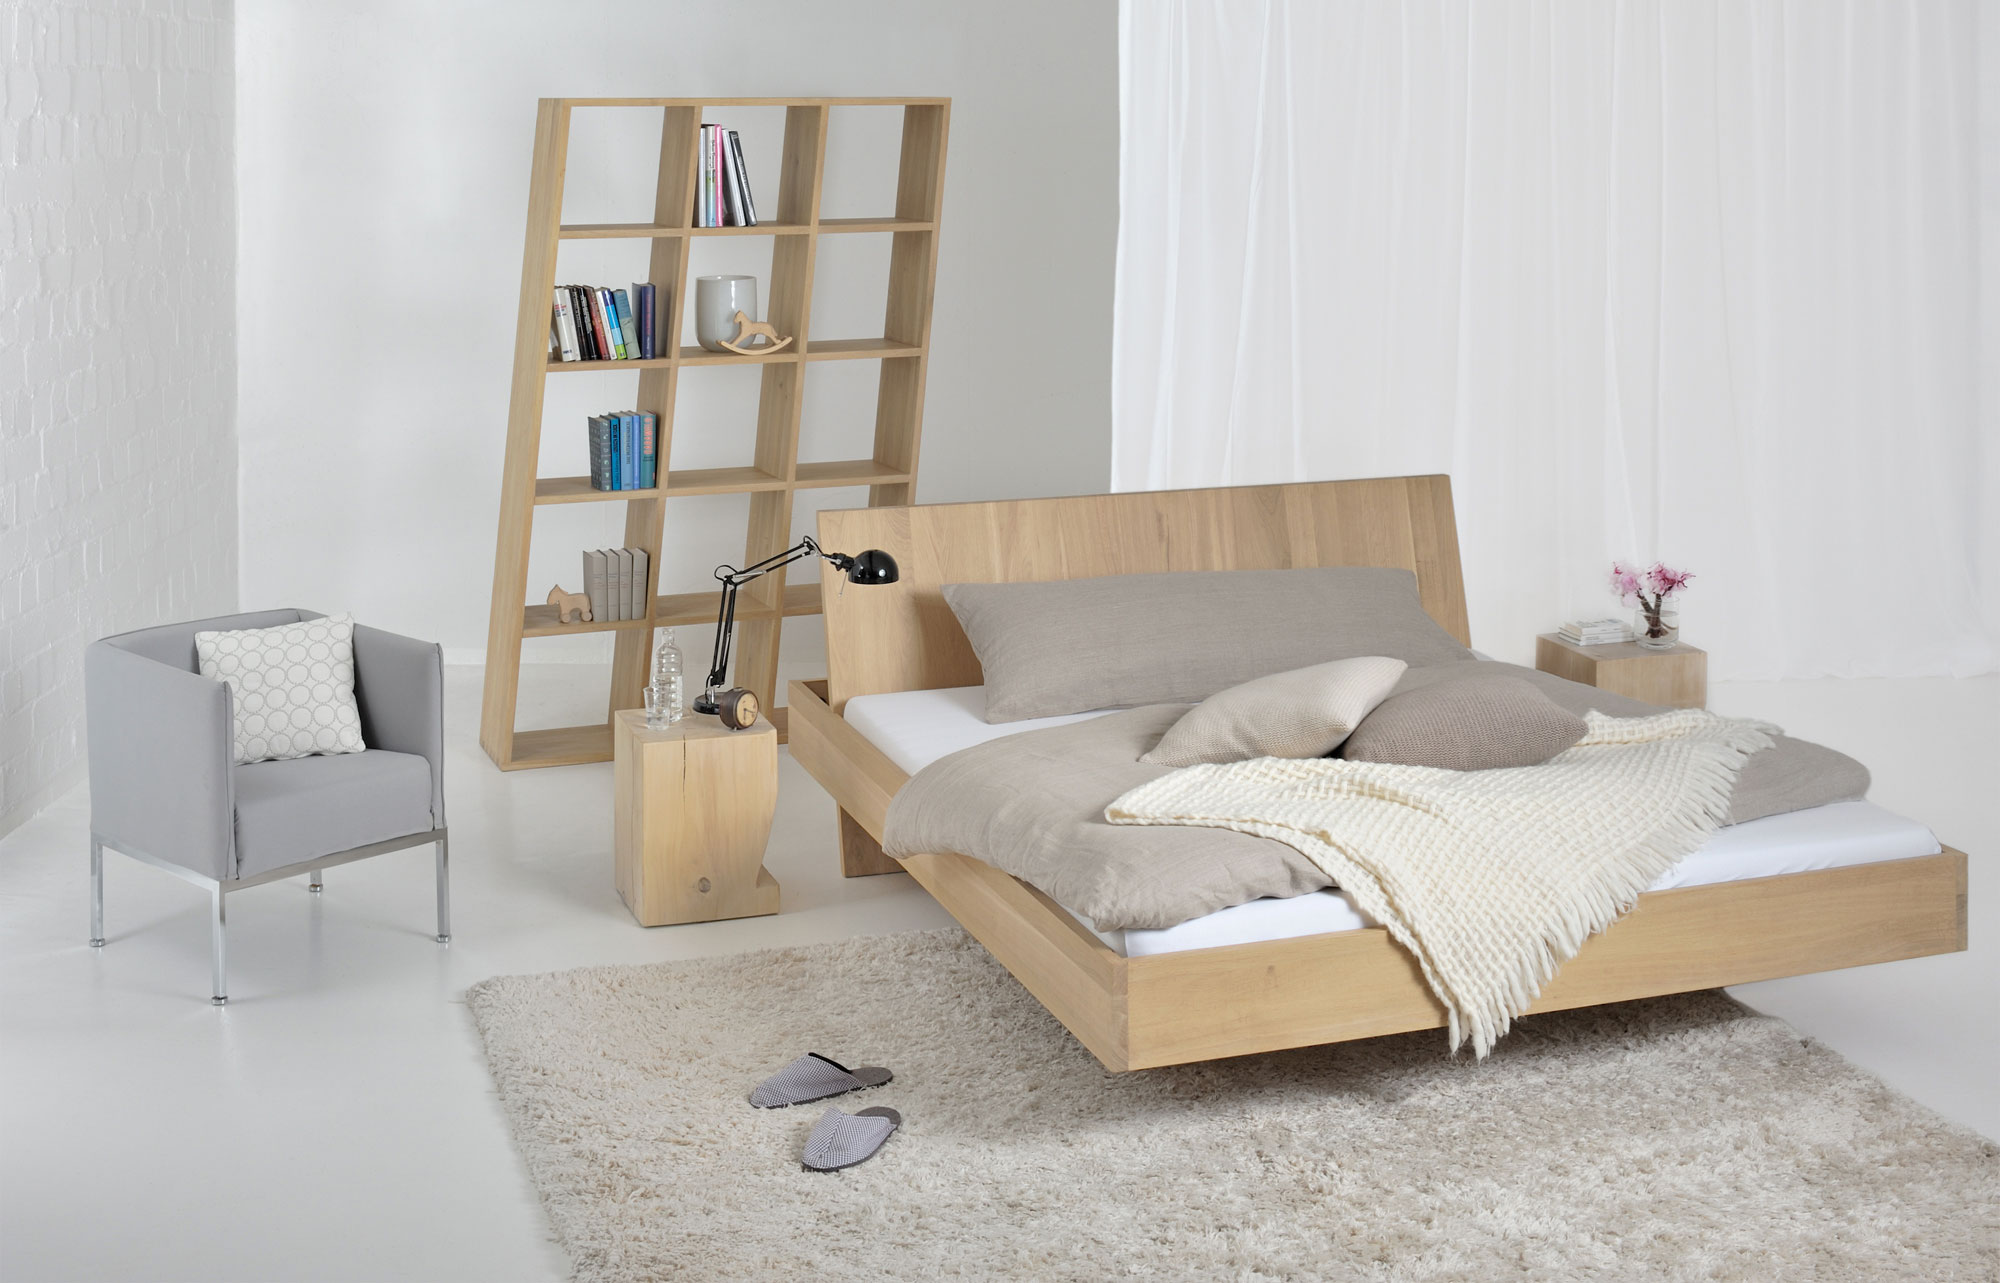 Design Solid Wood Bed SOMNIA custom made in solid wood by vitamin design